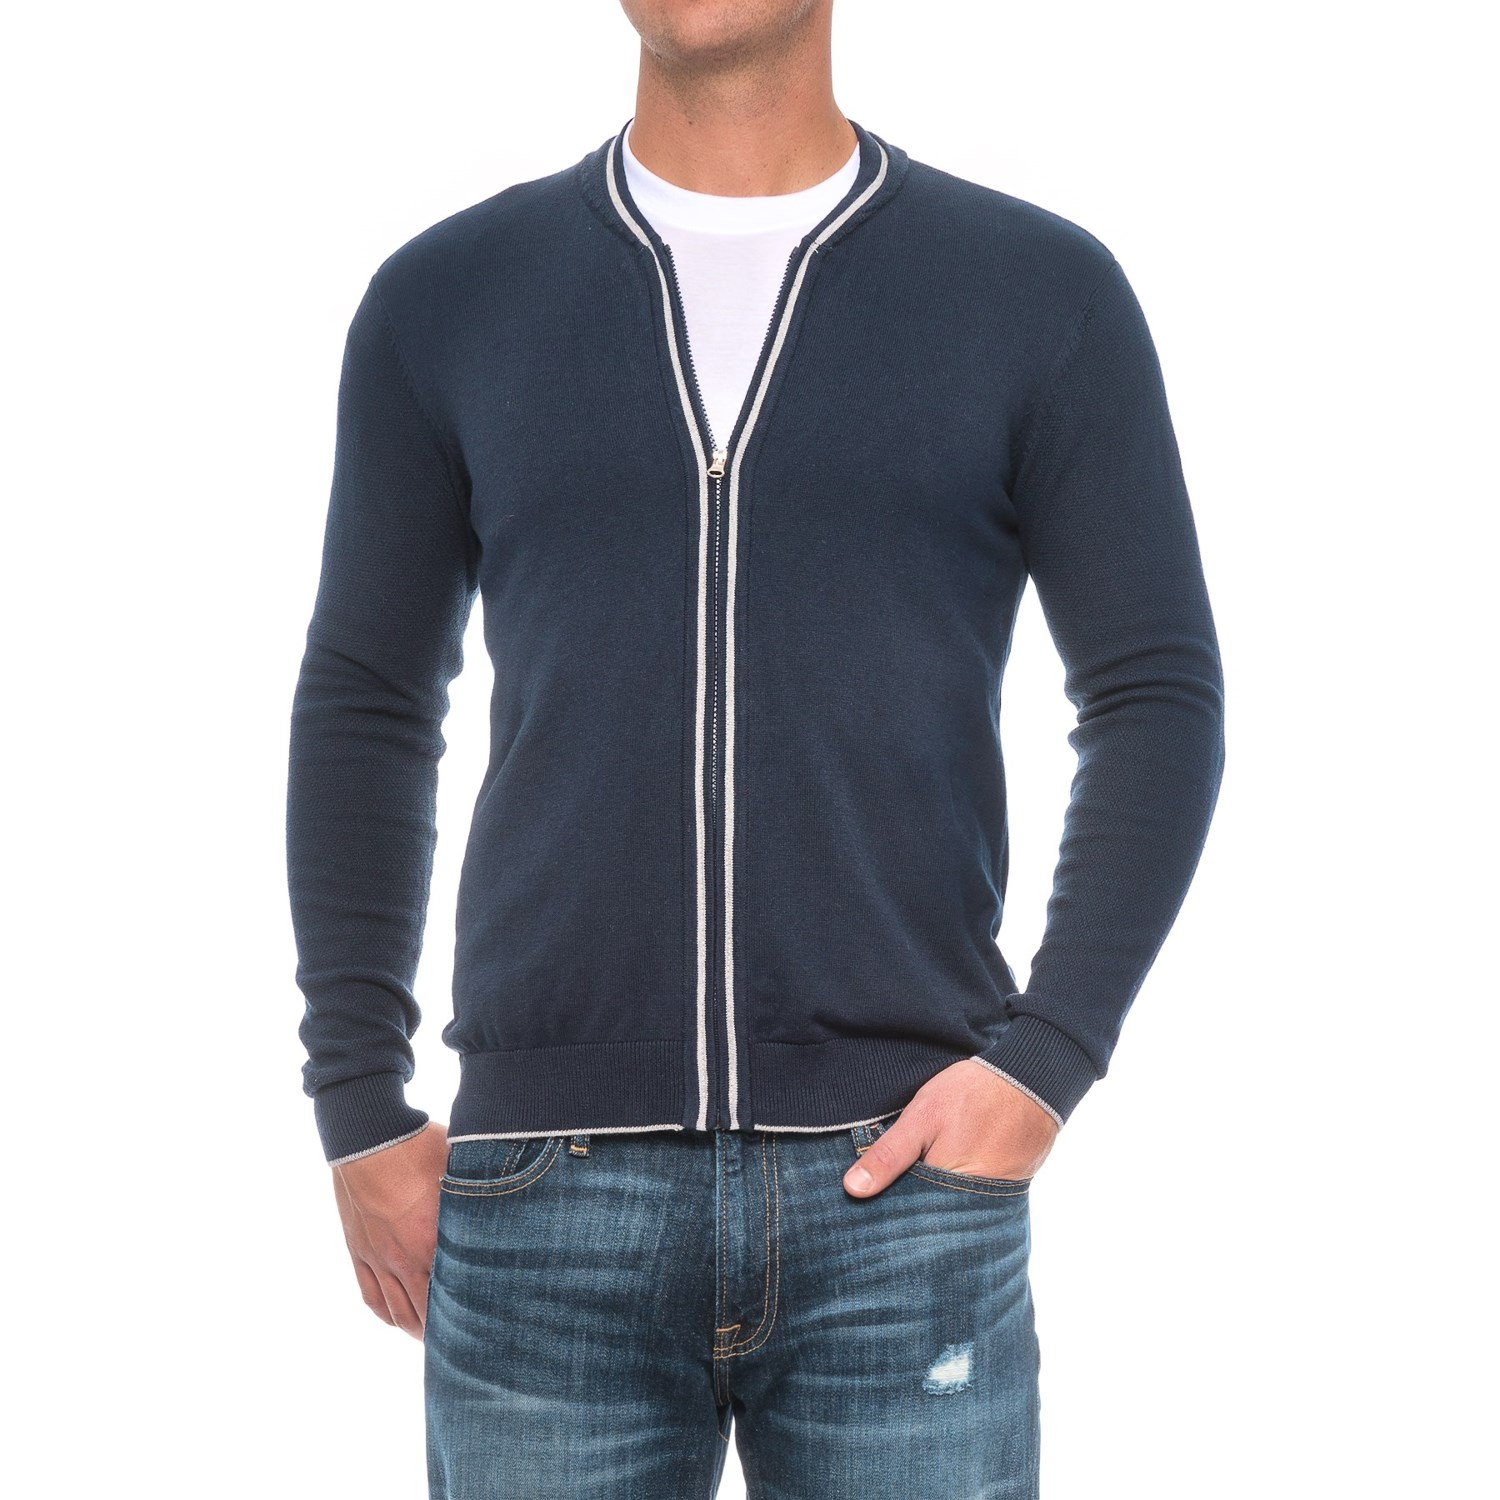 Full-Zip Sweater (For Men) - Save 66%